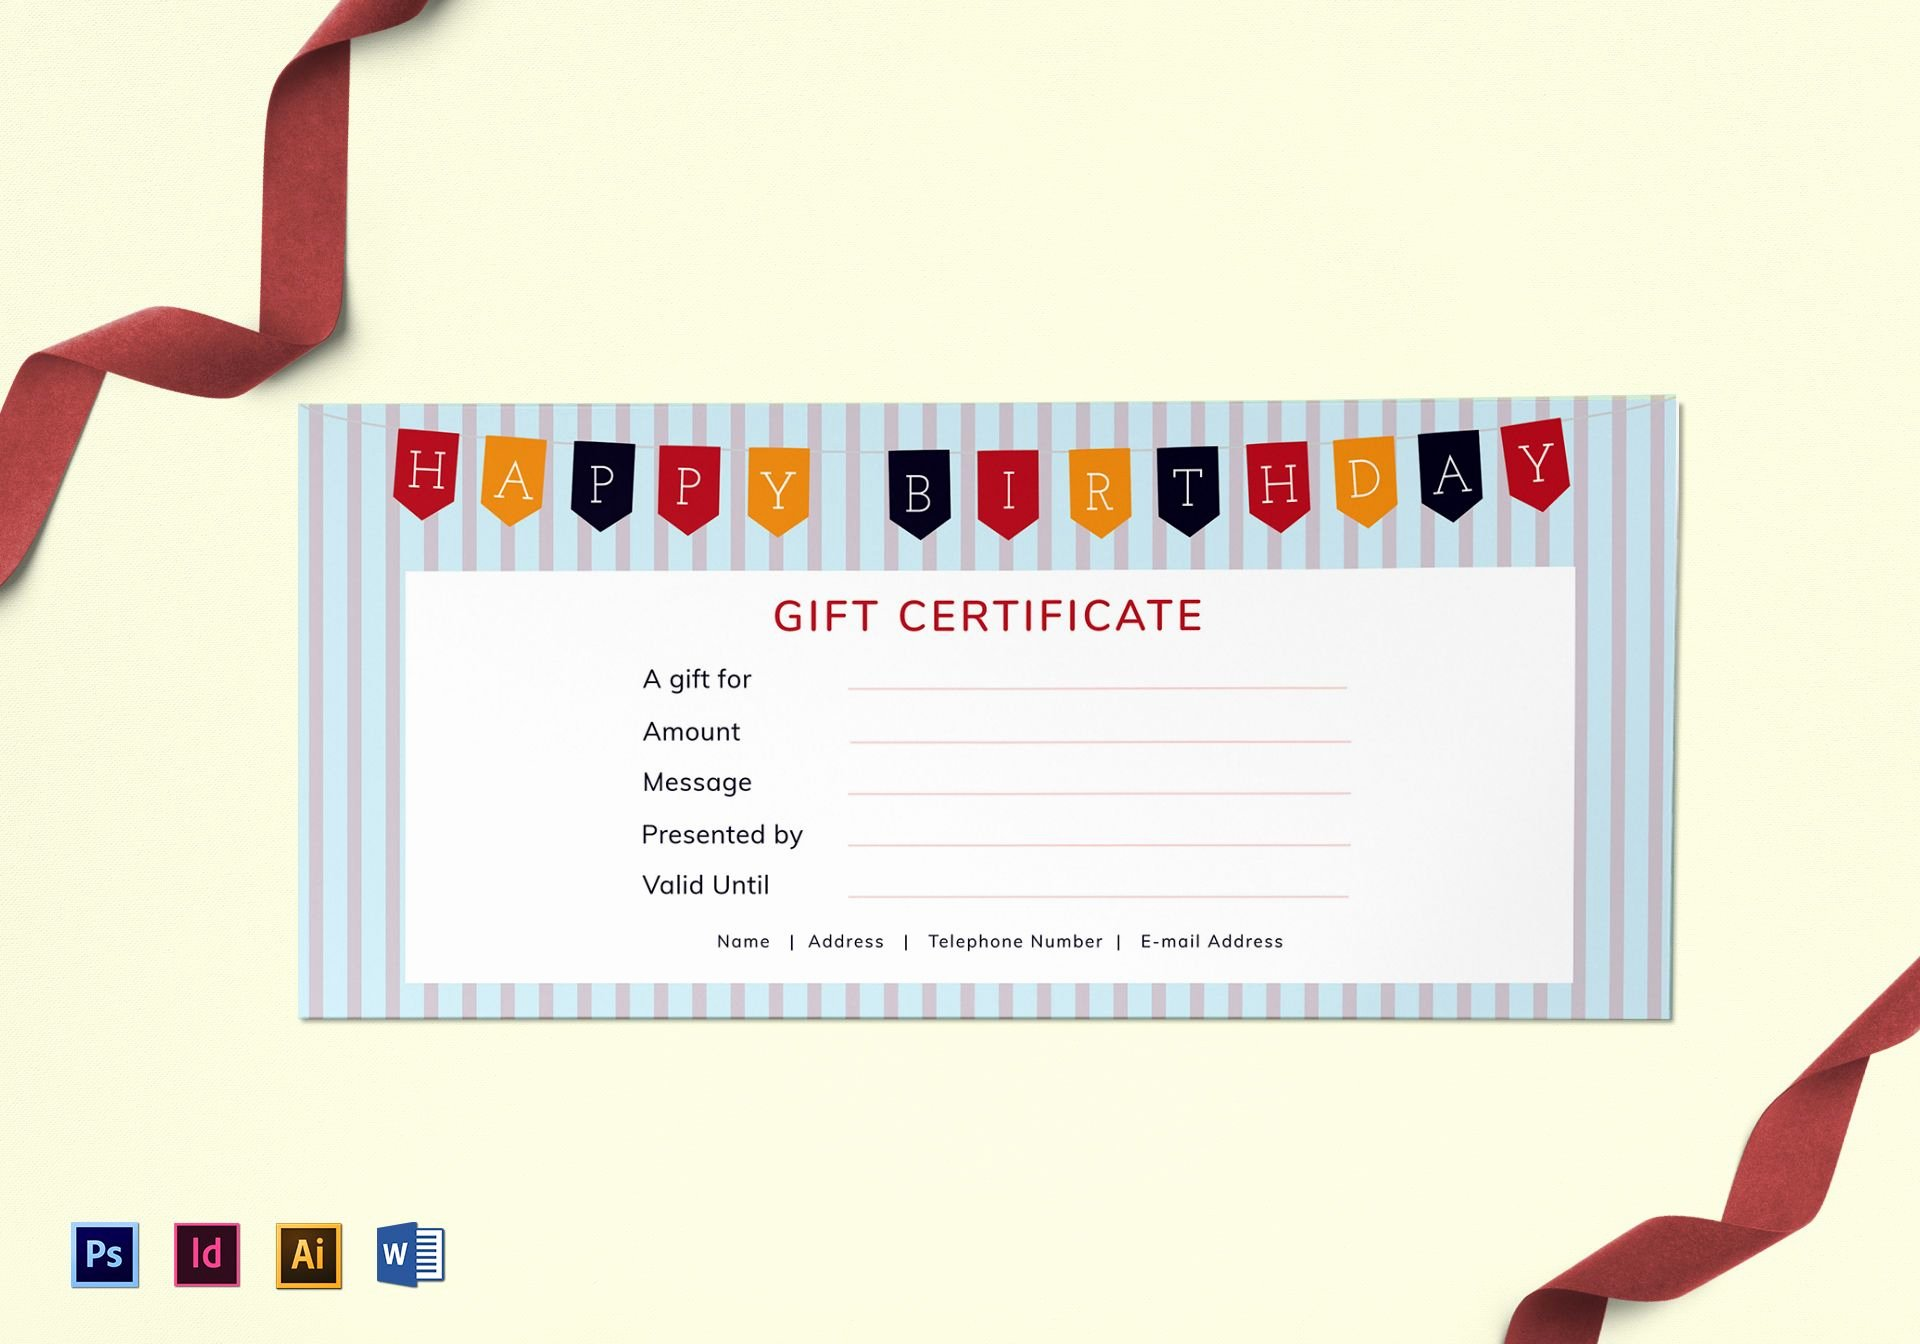 Photoshop Gift Certificate Template Inspirational Shop Gift Certificate Template Download